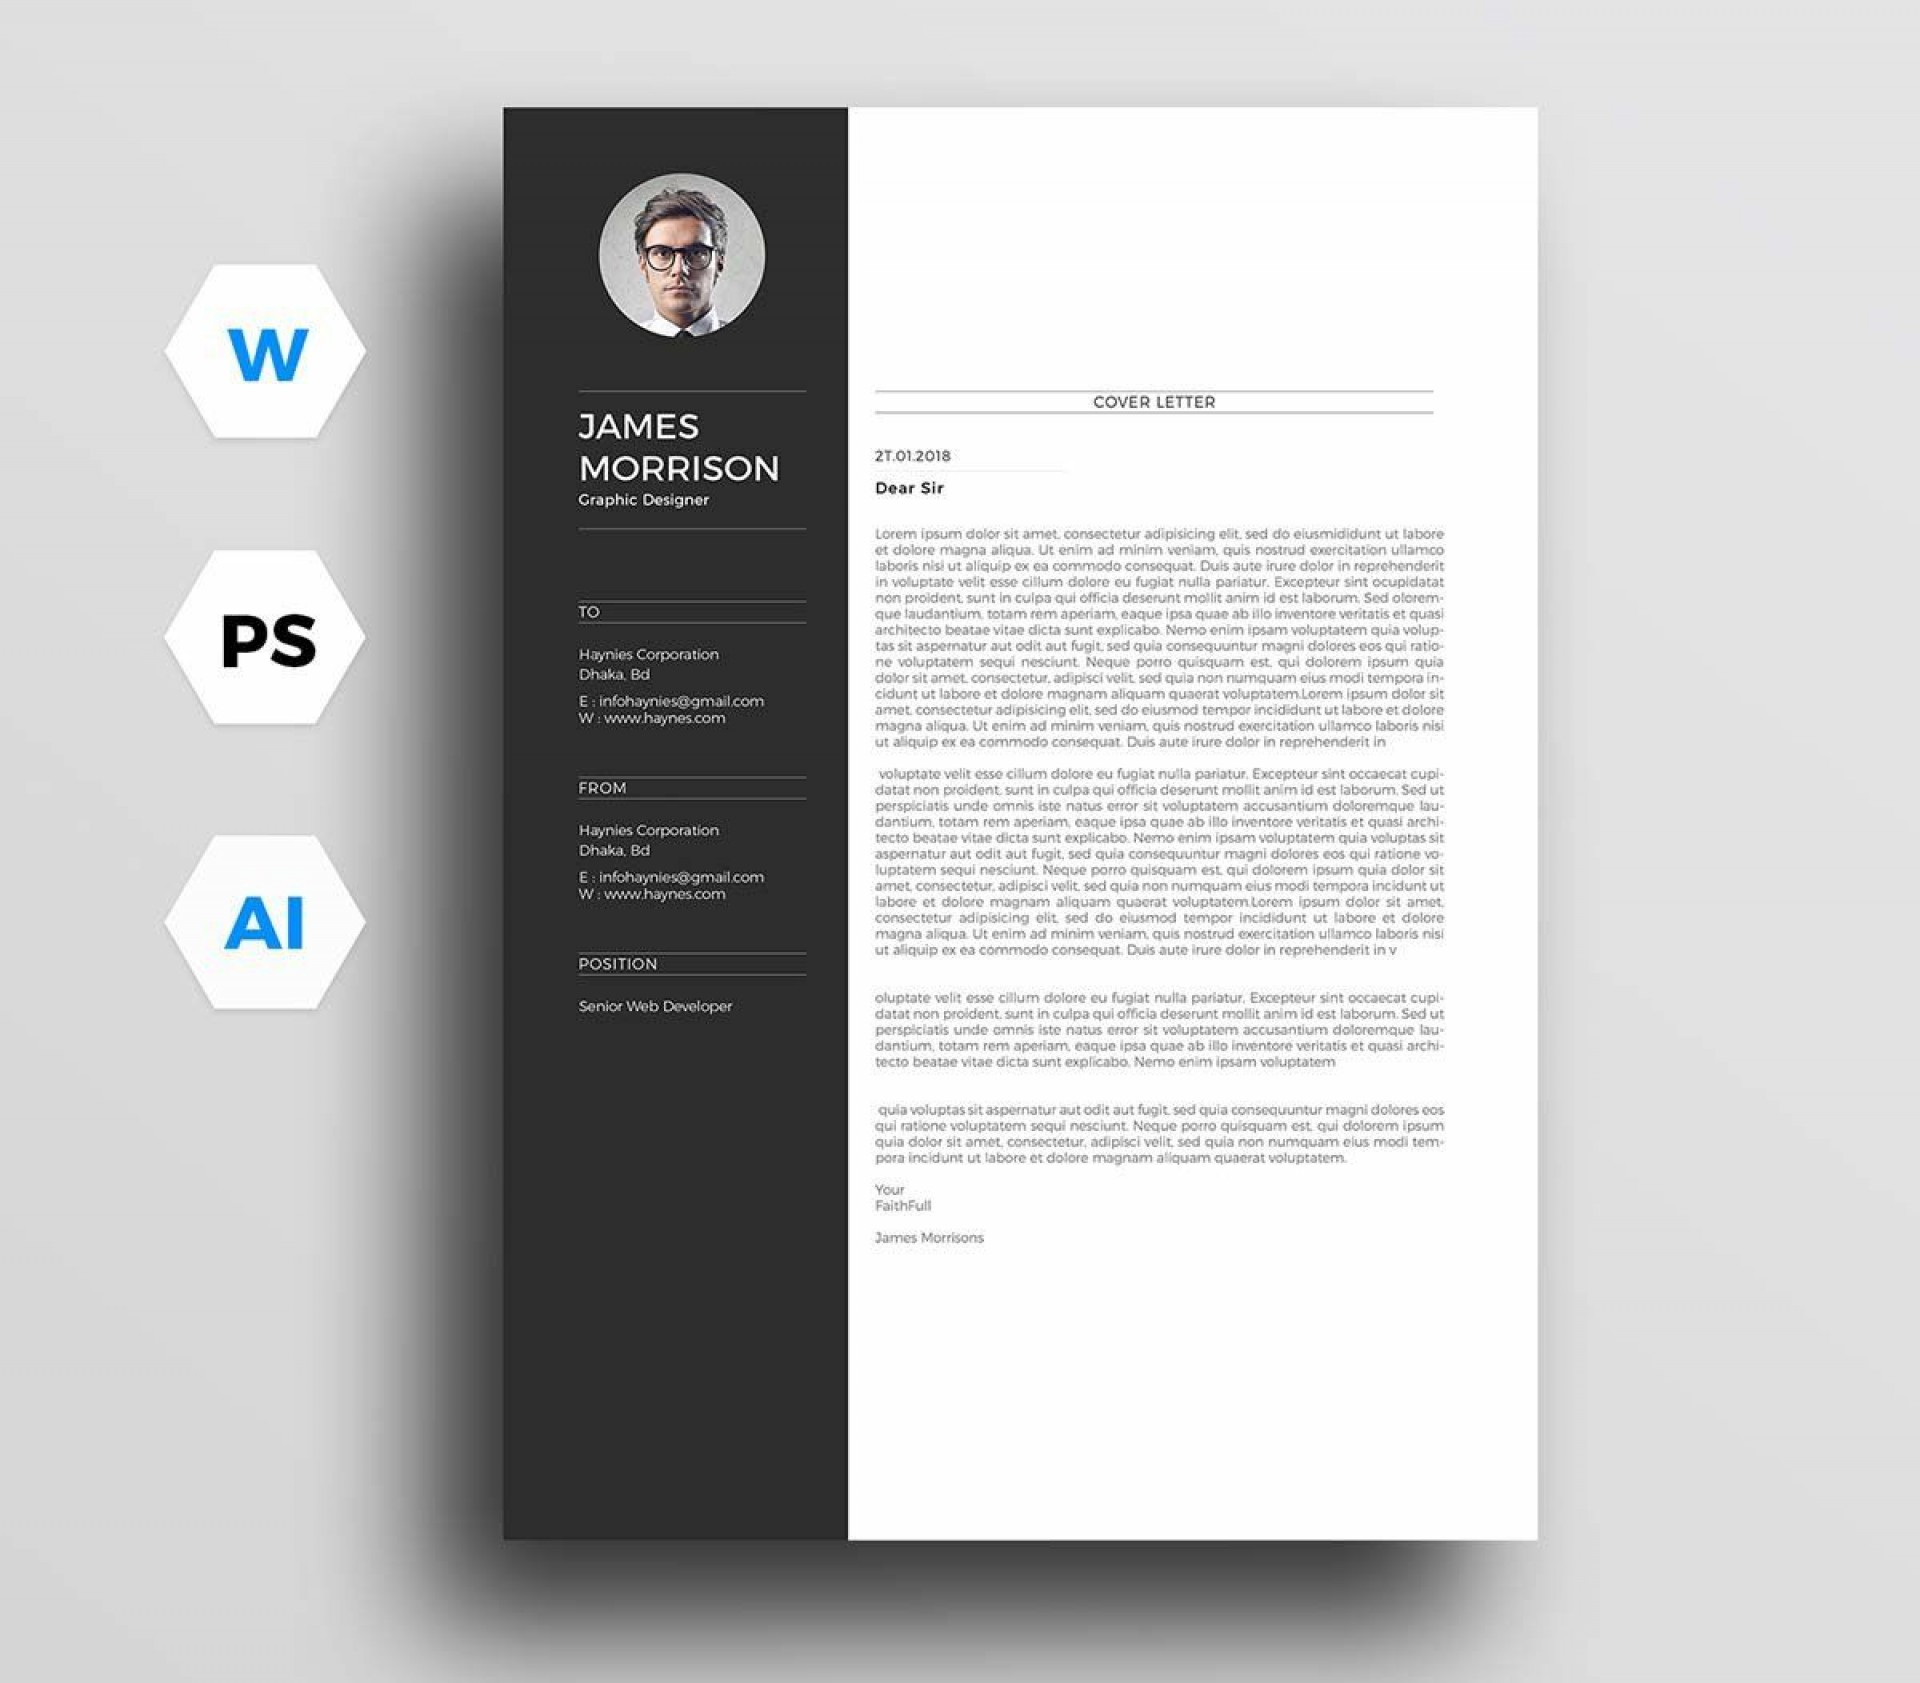 004 Sensational Resume Cover Letter Template Word Free High Resolution 1920